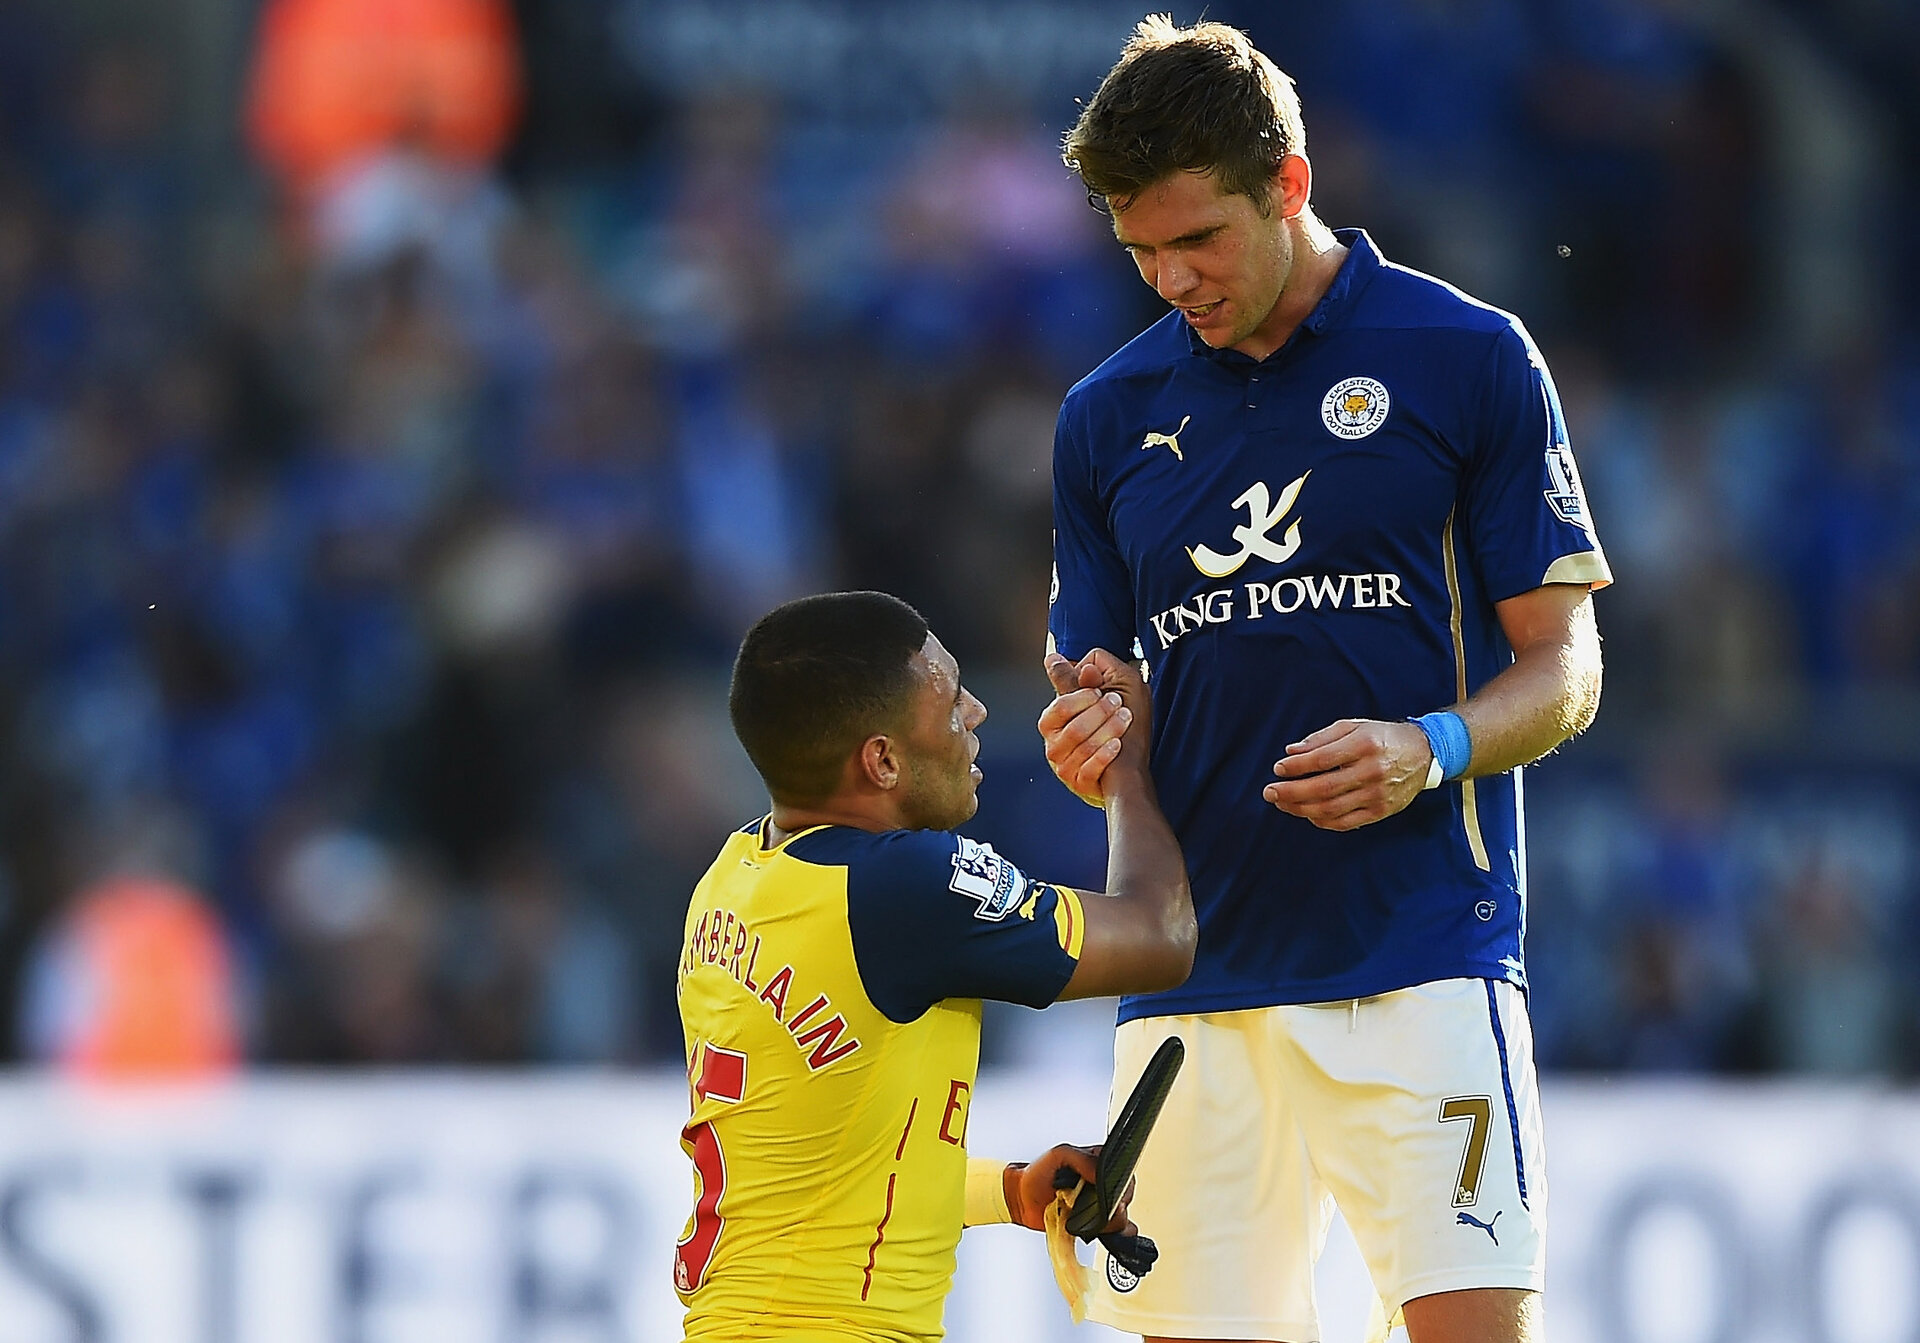 LEICESTER, ENGLAND - AUGUST 31:  Alex Oxlade-Chamberlain of Arsenal shakes hands with Dean Hammond of Leicester City after the Barclays Premier League match between Leicester City and Arsenal at The King Power Stadium on August 31, 2014 in Leicester, England.  (Photo by Laurence Griffiths/Getty Images)